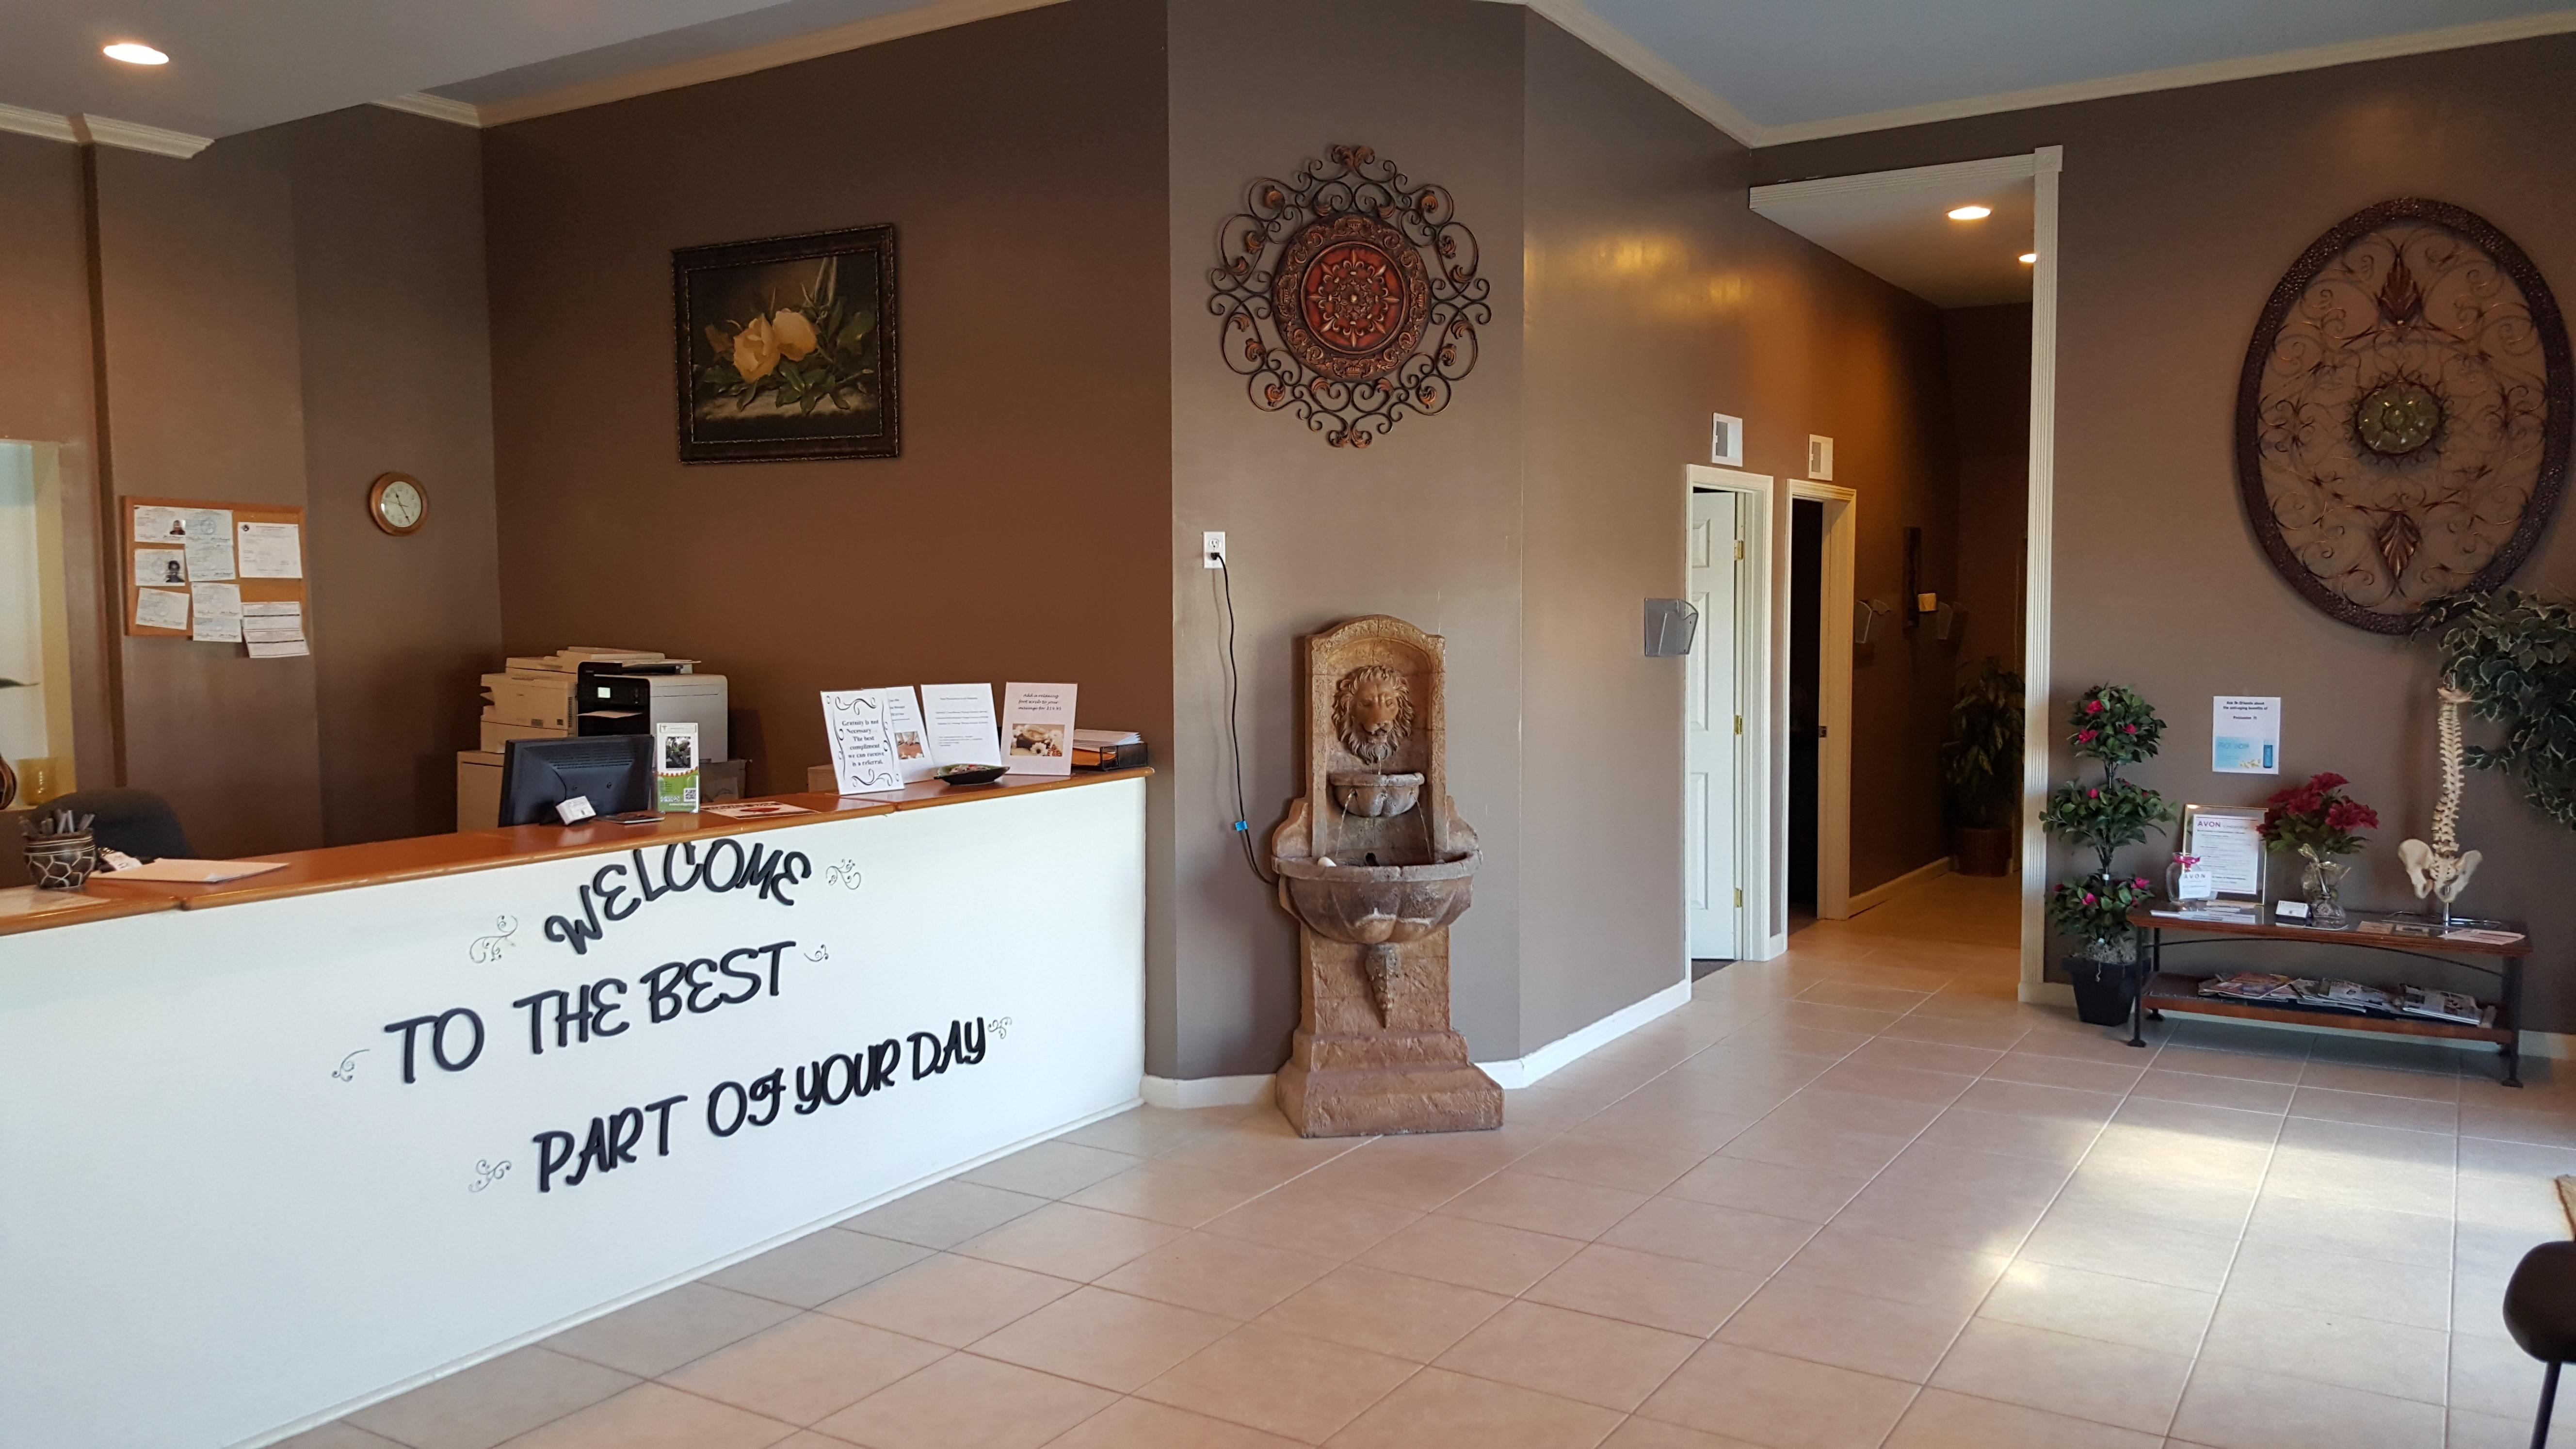 North Florida Chiropractic Physical Therapy image 1